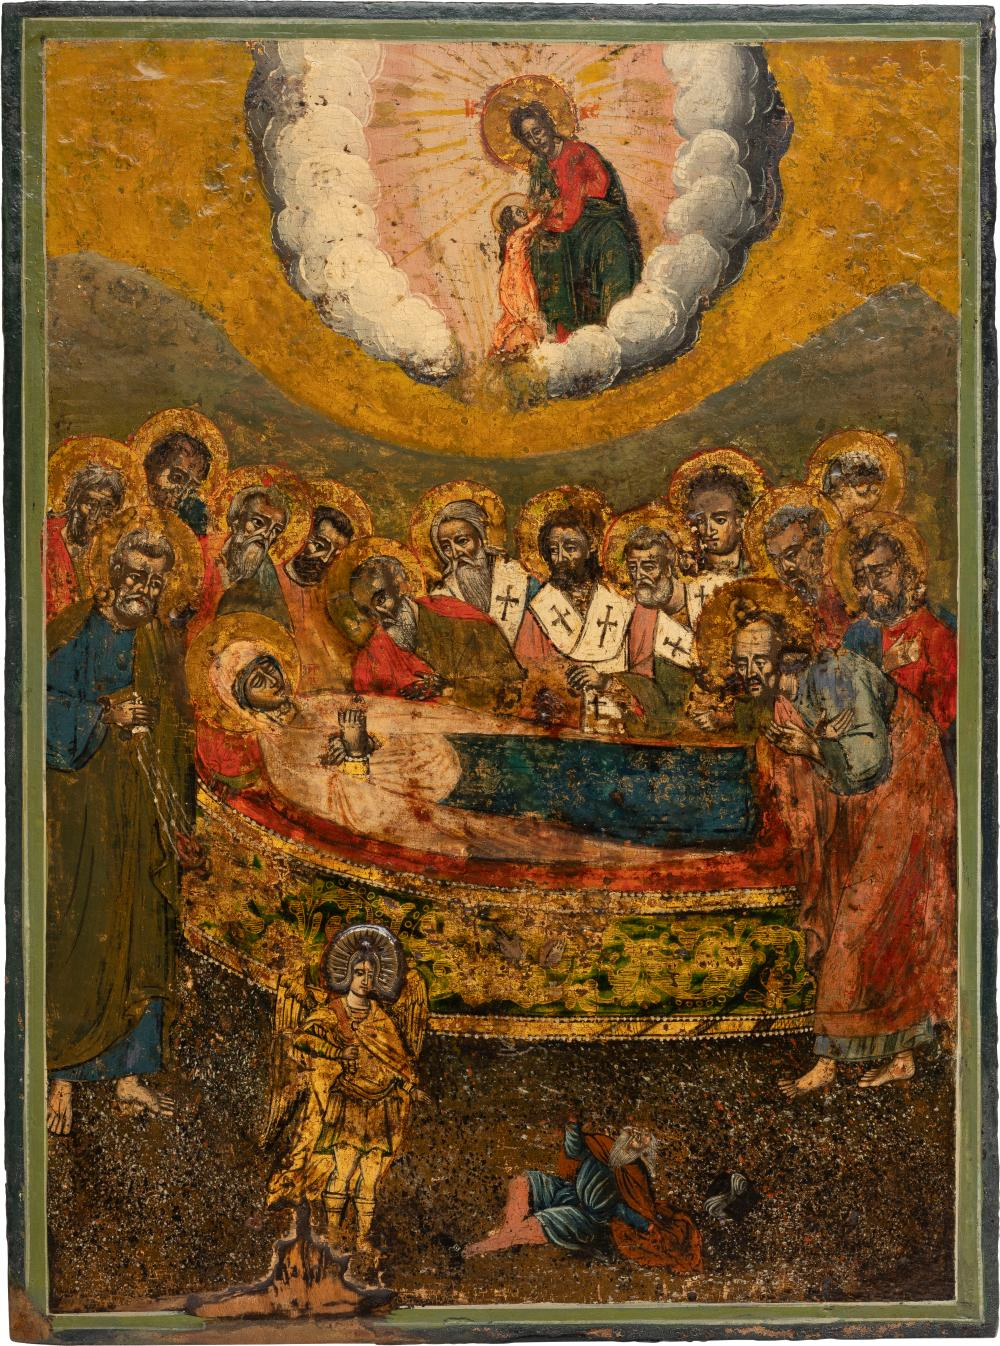 A MELCHITE ICON SHOWING THE DORMITION OF THE MOTHER OF GOD